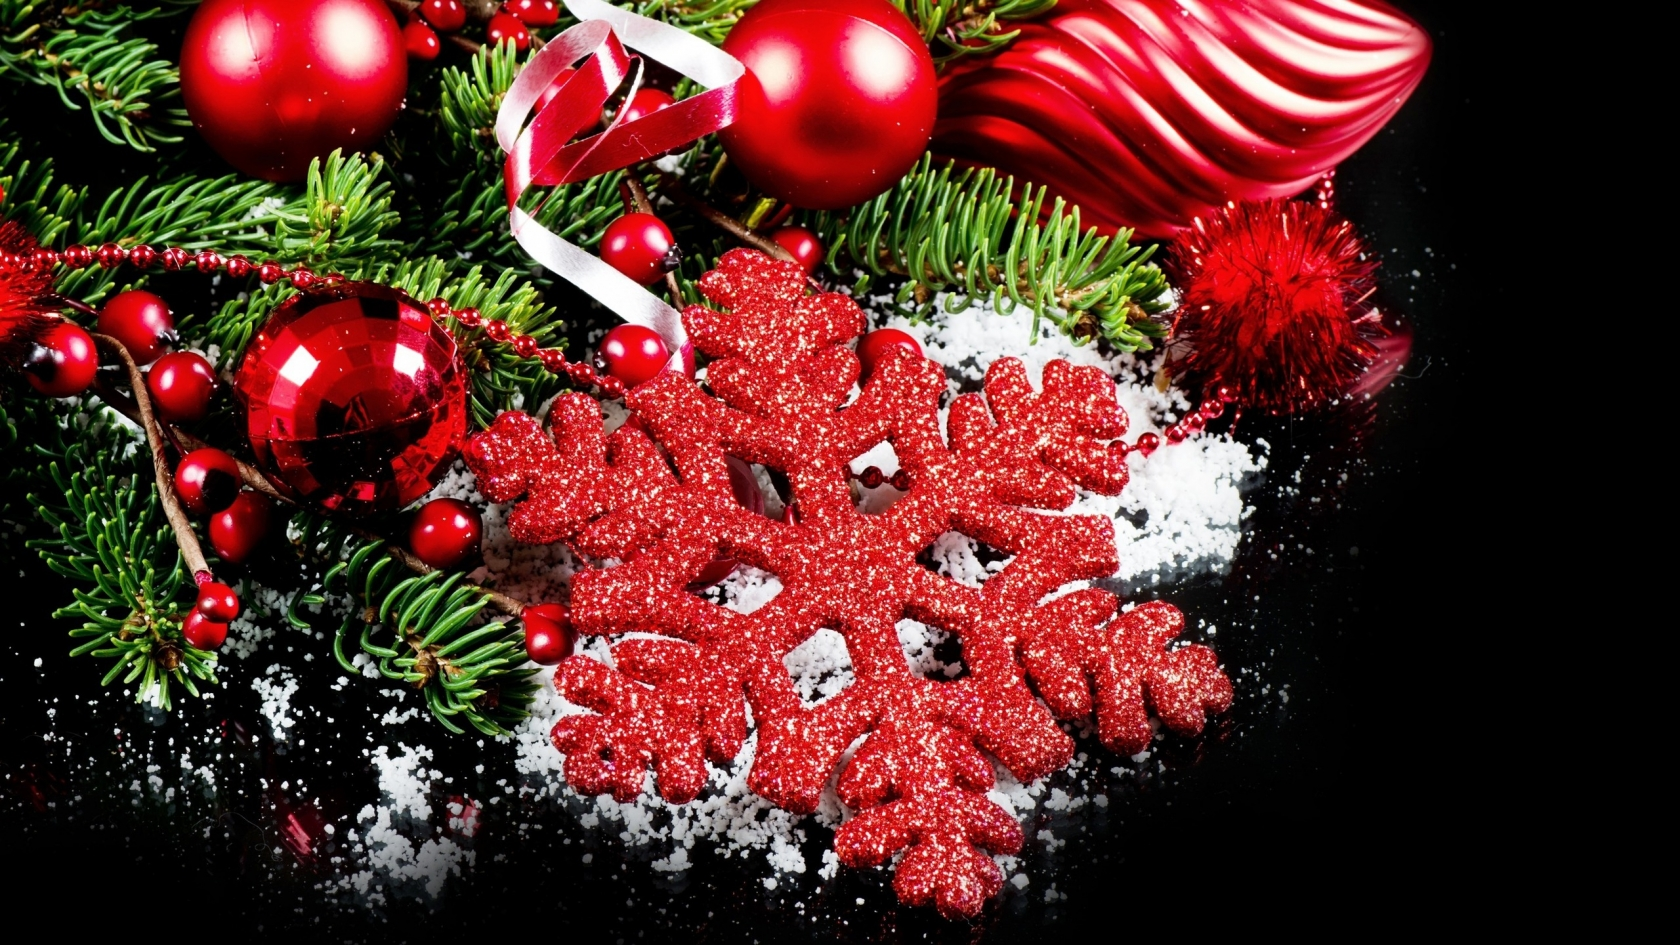 2014 Beautiful Christmas Decorations  for 1680 x 945 HDTV resolution